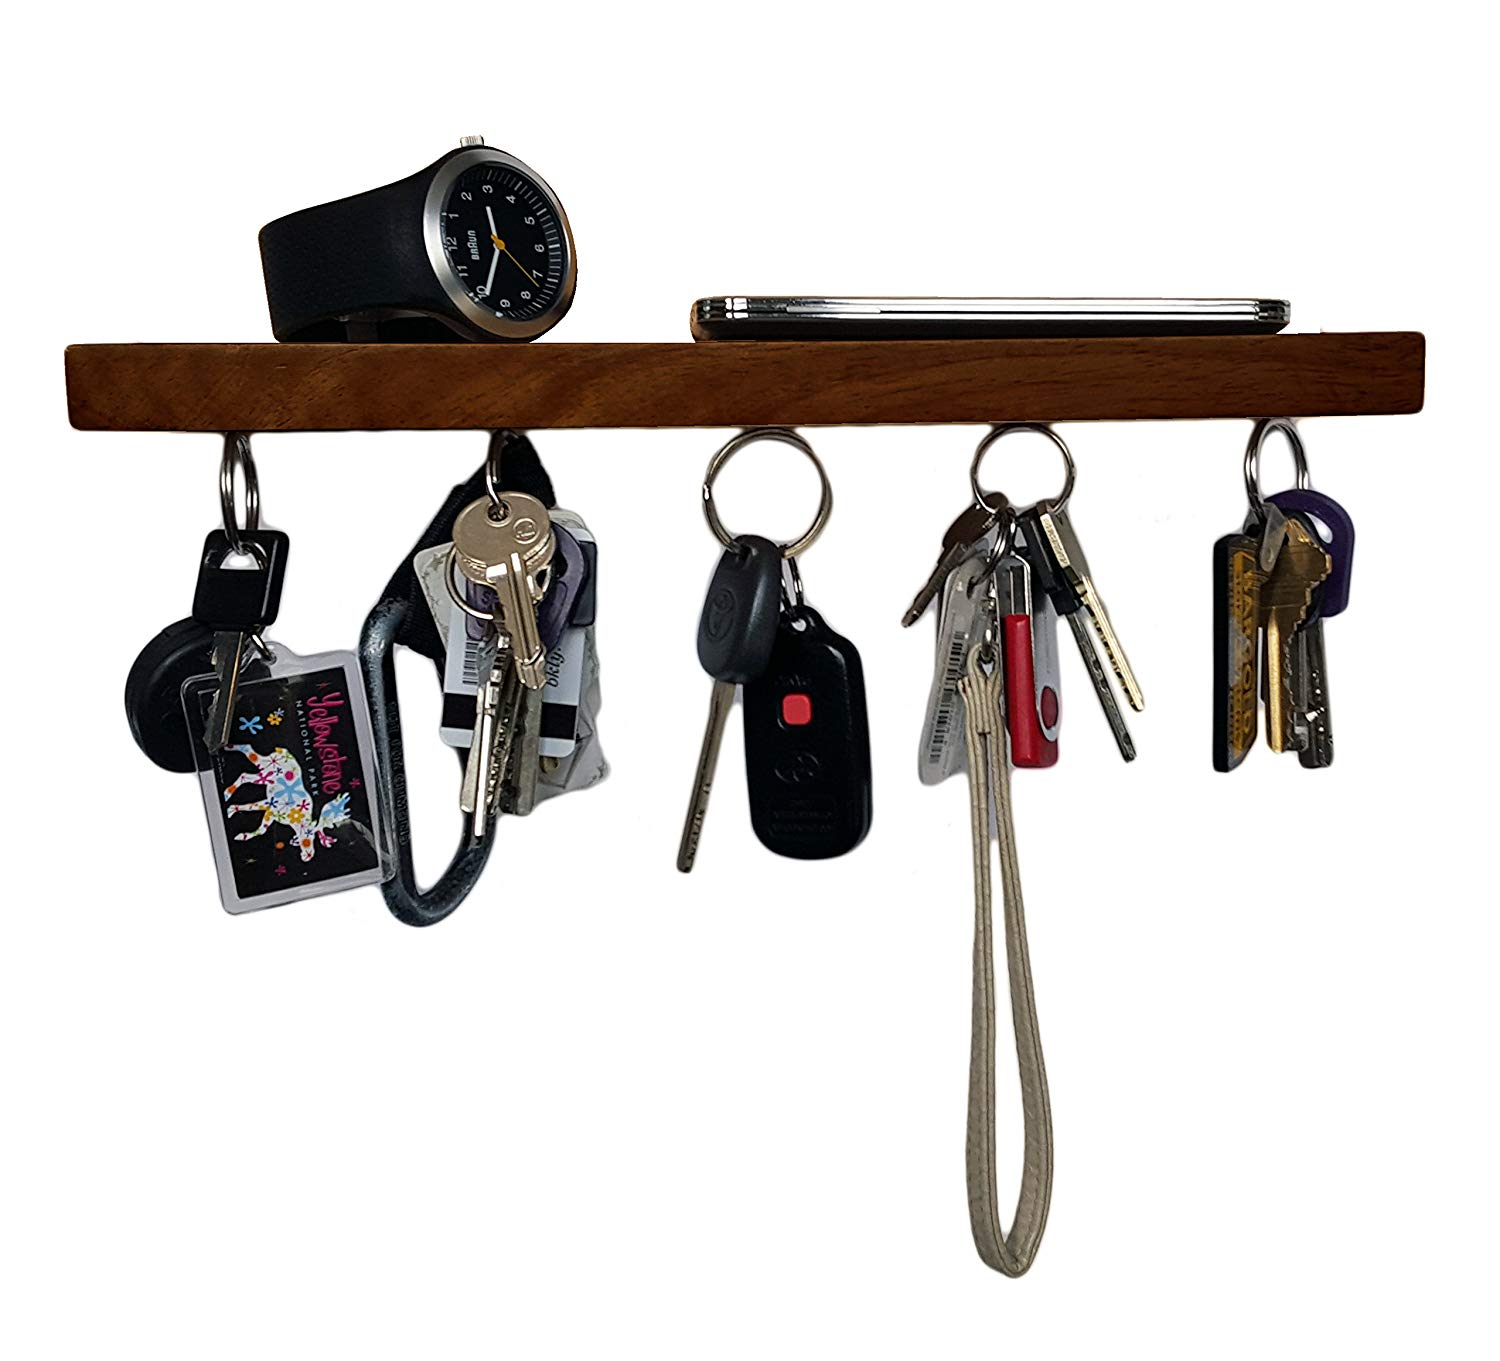 Brooklyn Basix Premium Magnetic Wood Key Ring Holder